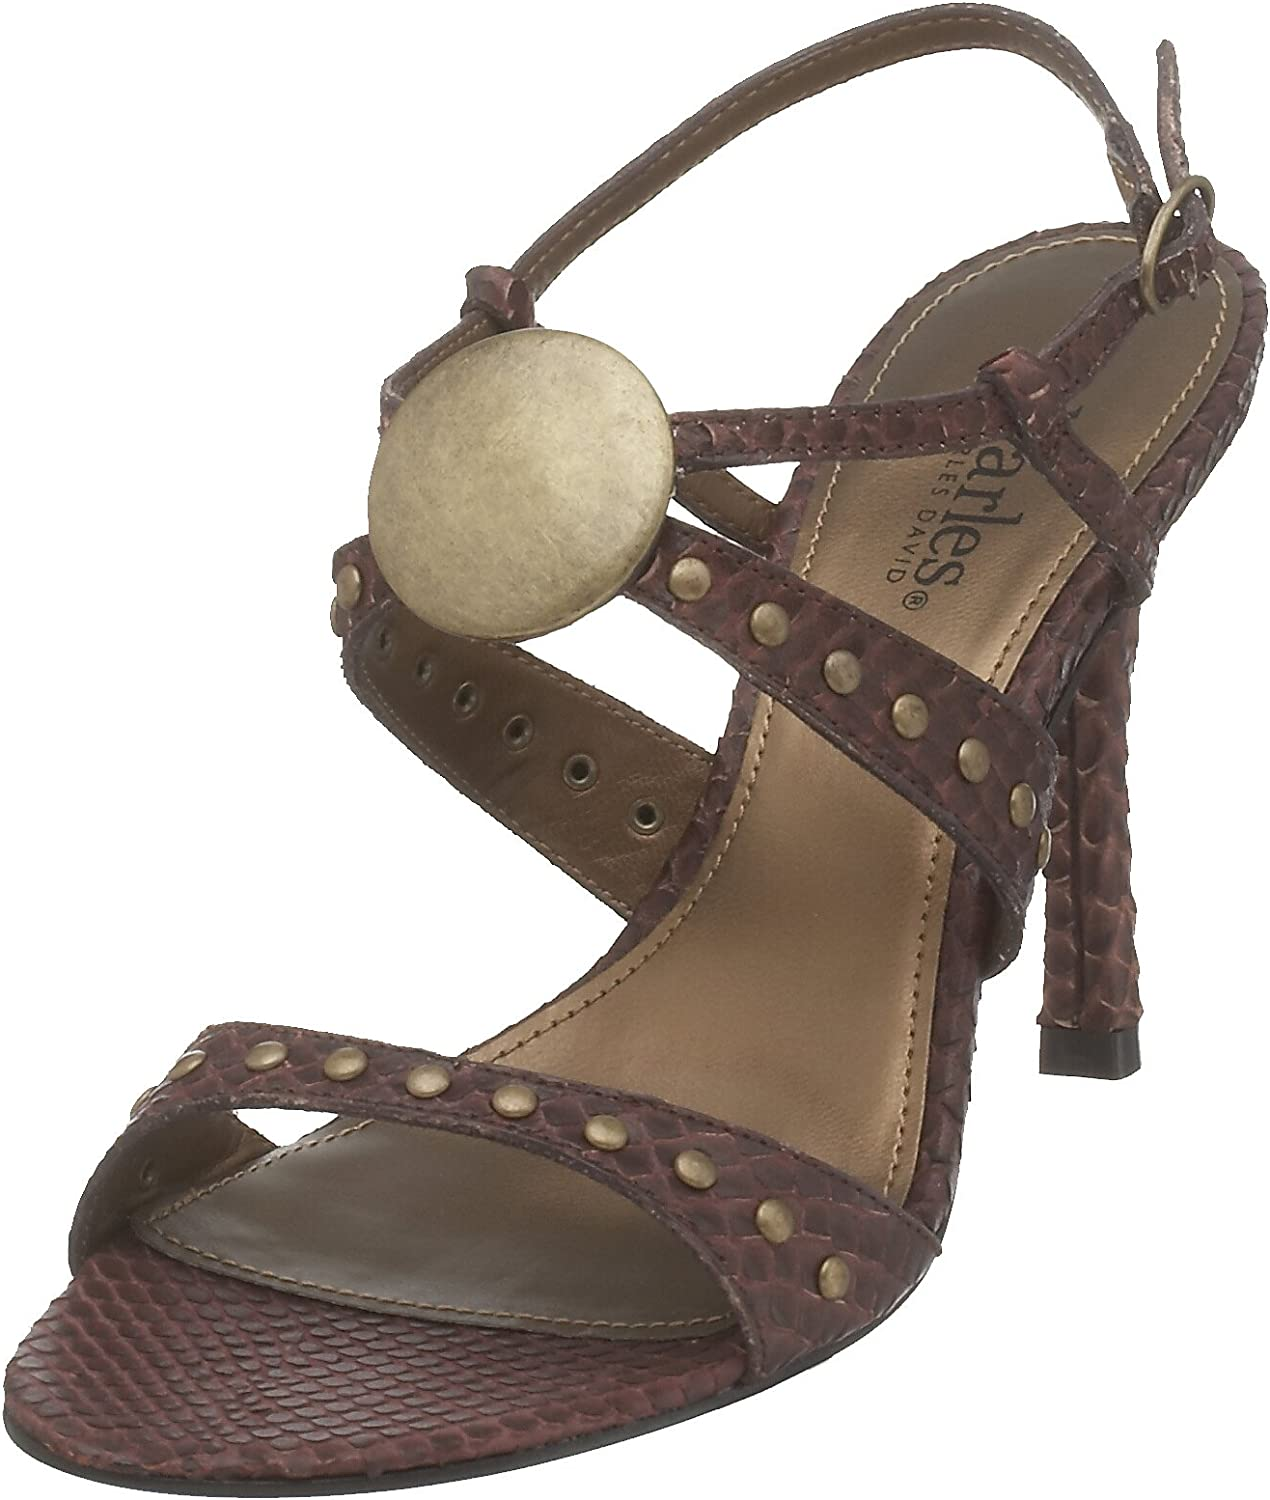 Charles by Charles David Women's Haley Ankle Strap Sandal